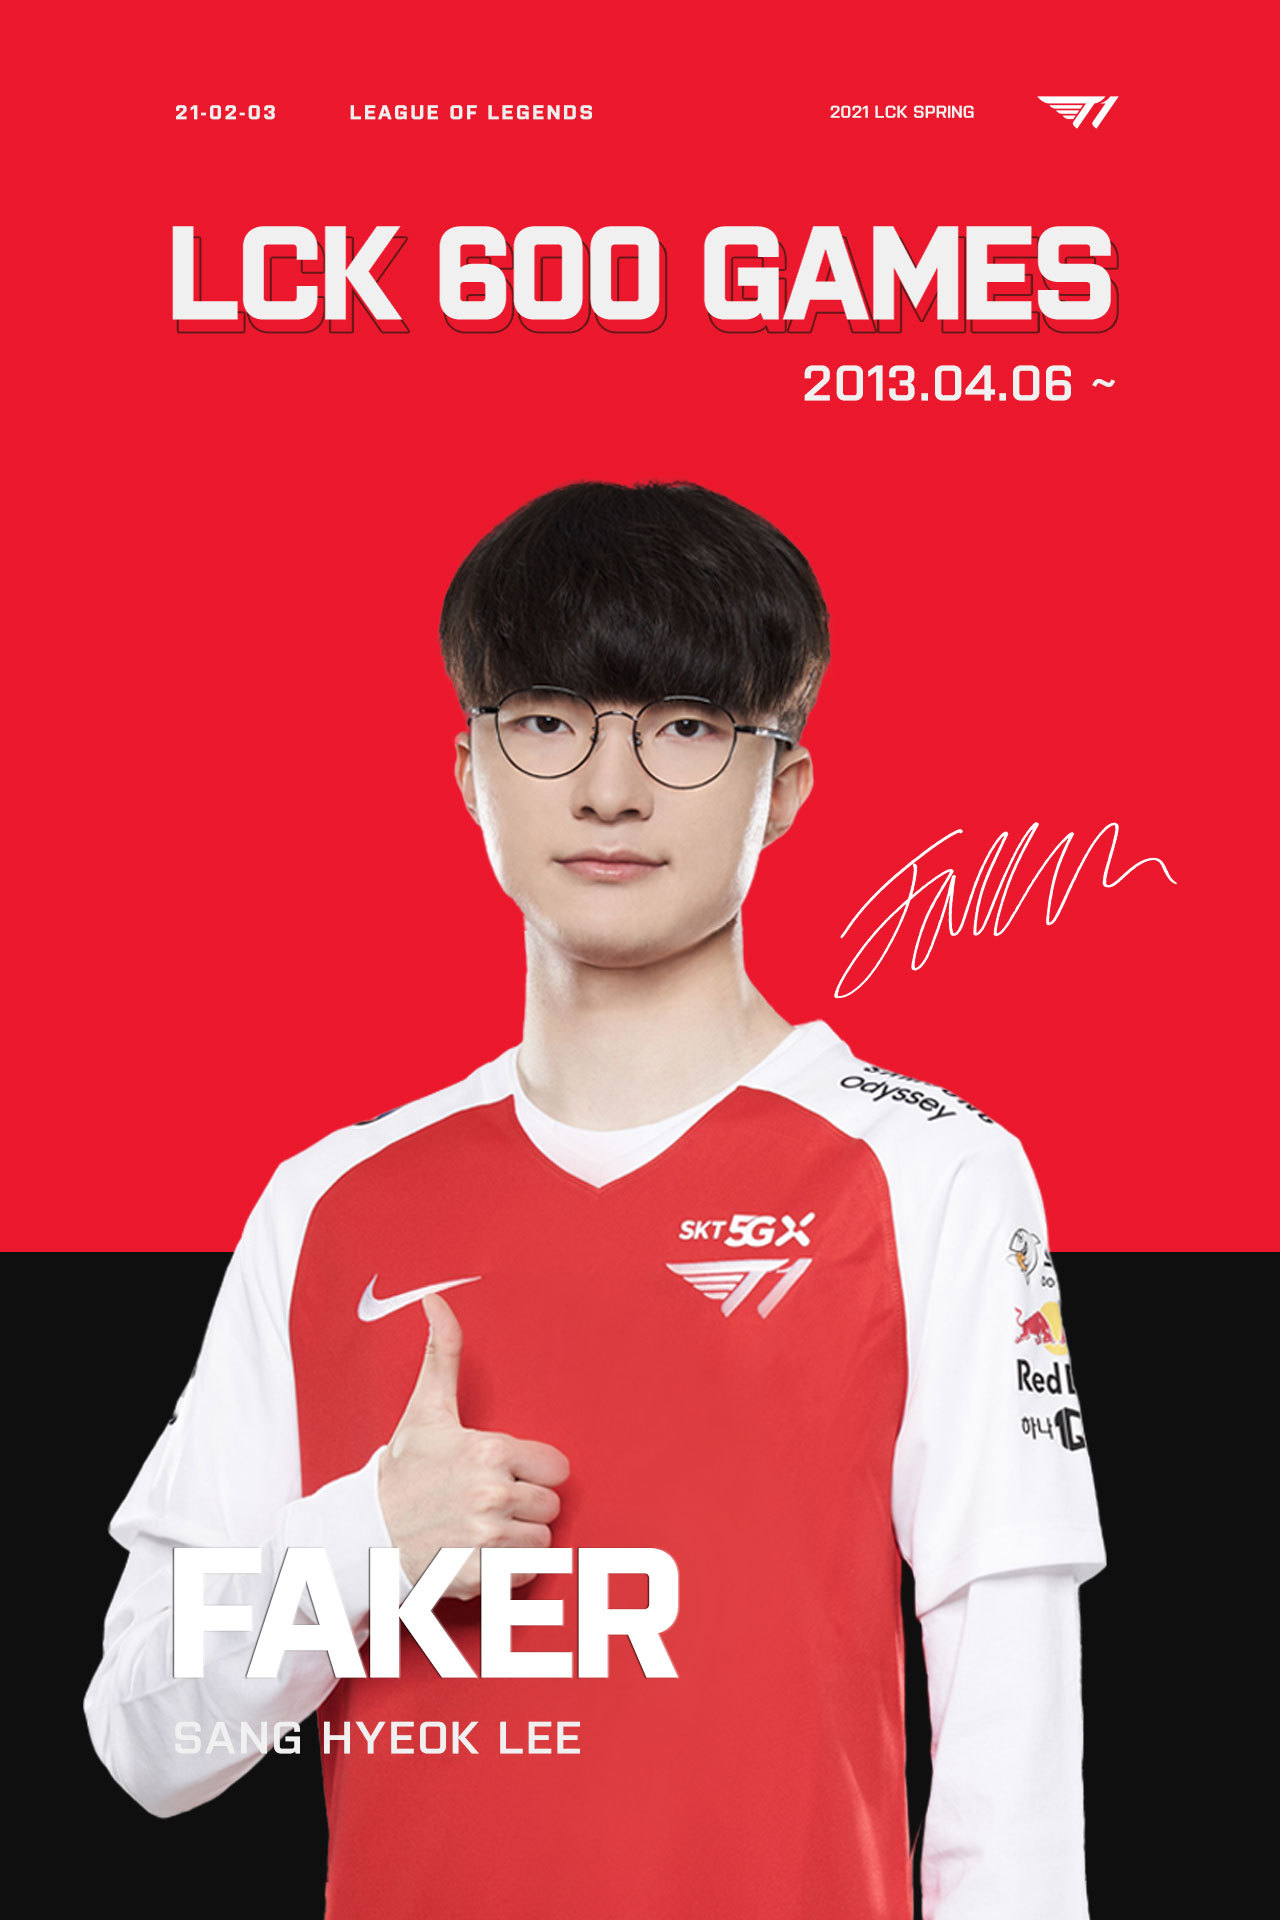 Faker plays his 600th game in the LCK on Feb. 3. (Riot Games)